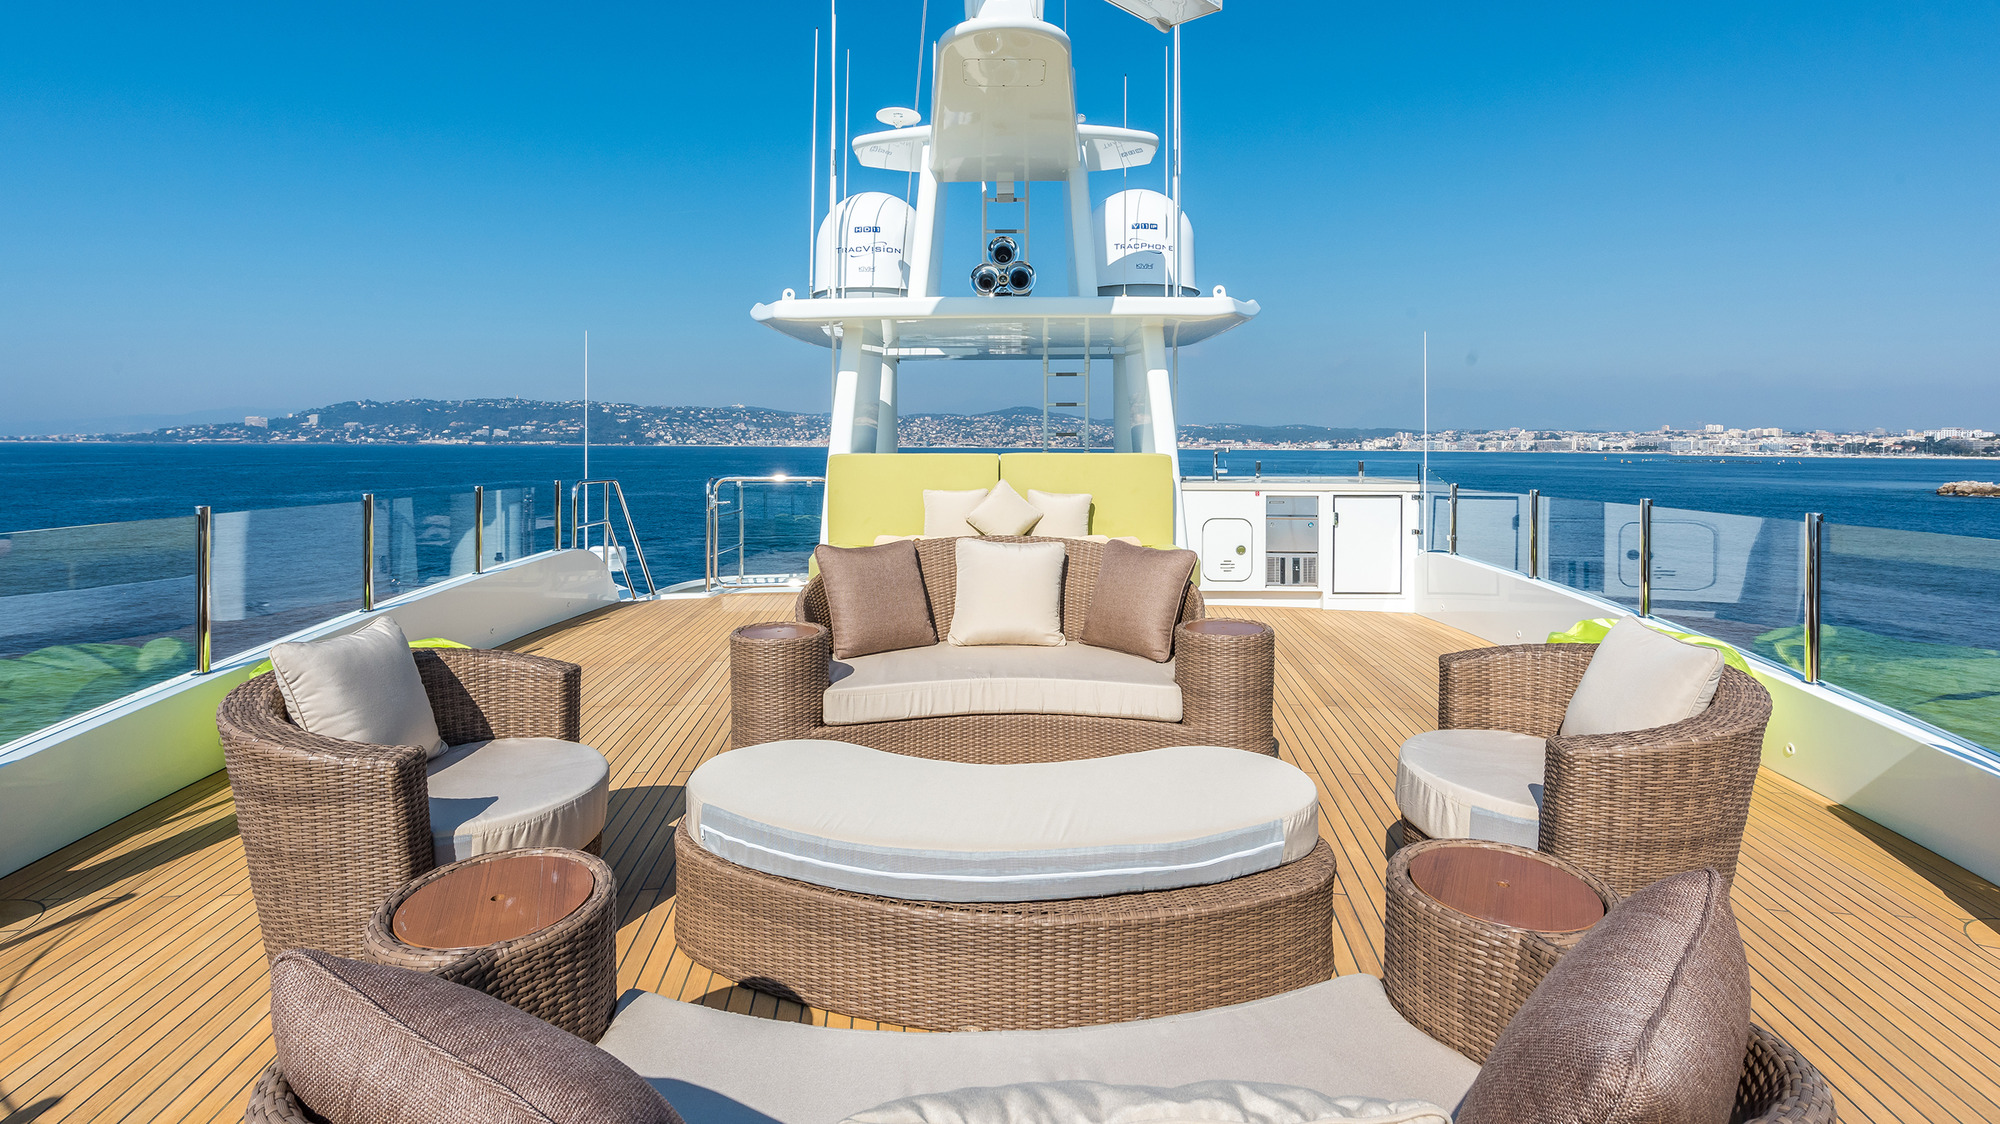 Top Deck Lounging And Seating